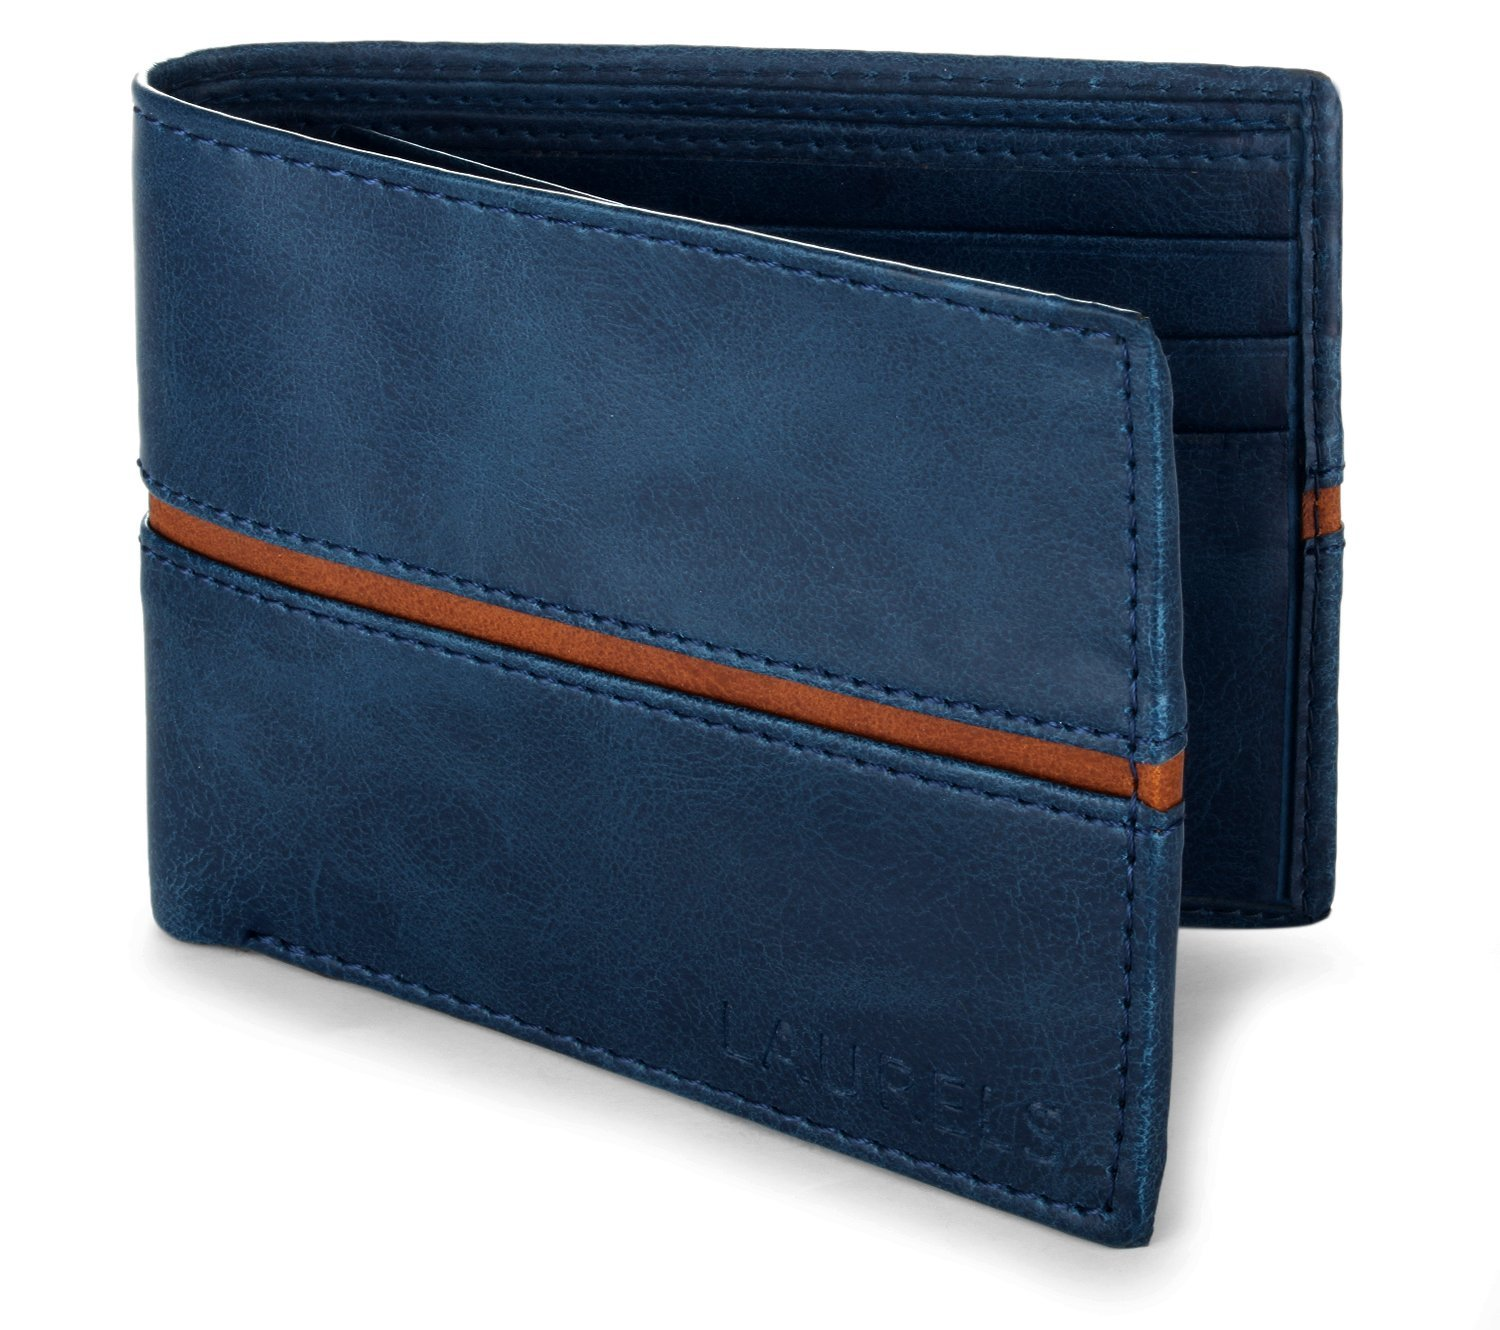 Buy Wallets at Minimum 50% Off Or More Starting at Rs. 149 discount offer